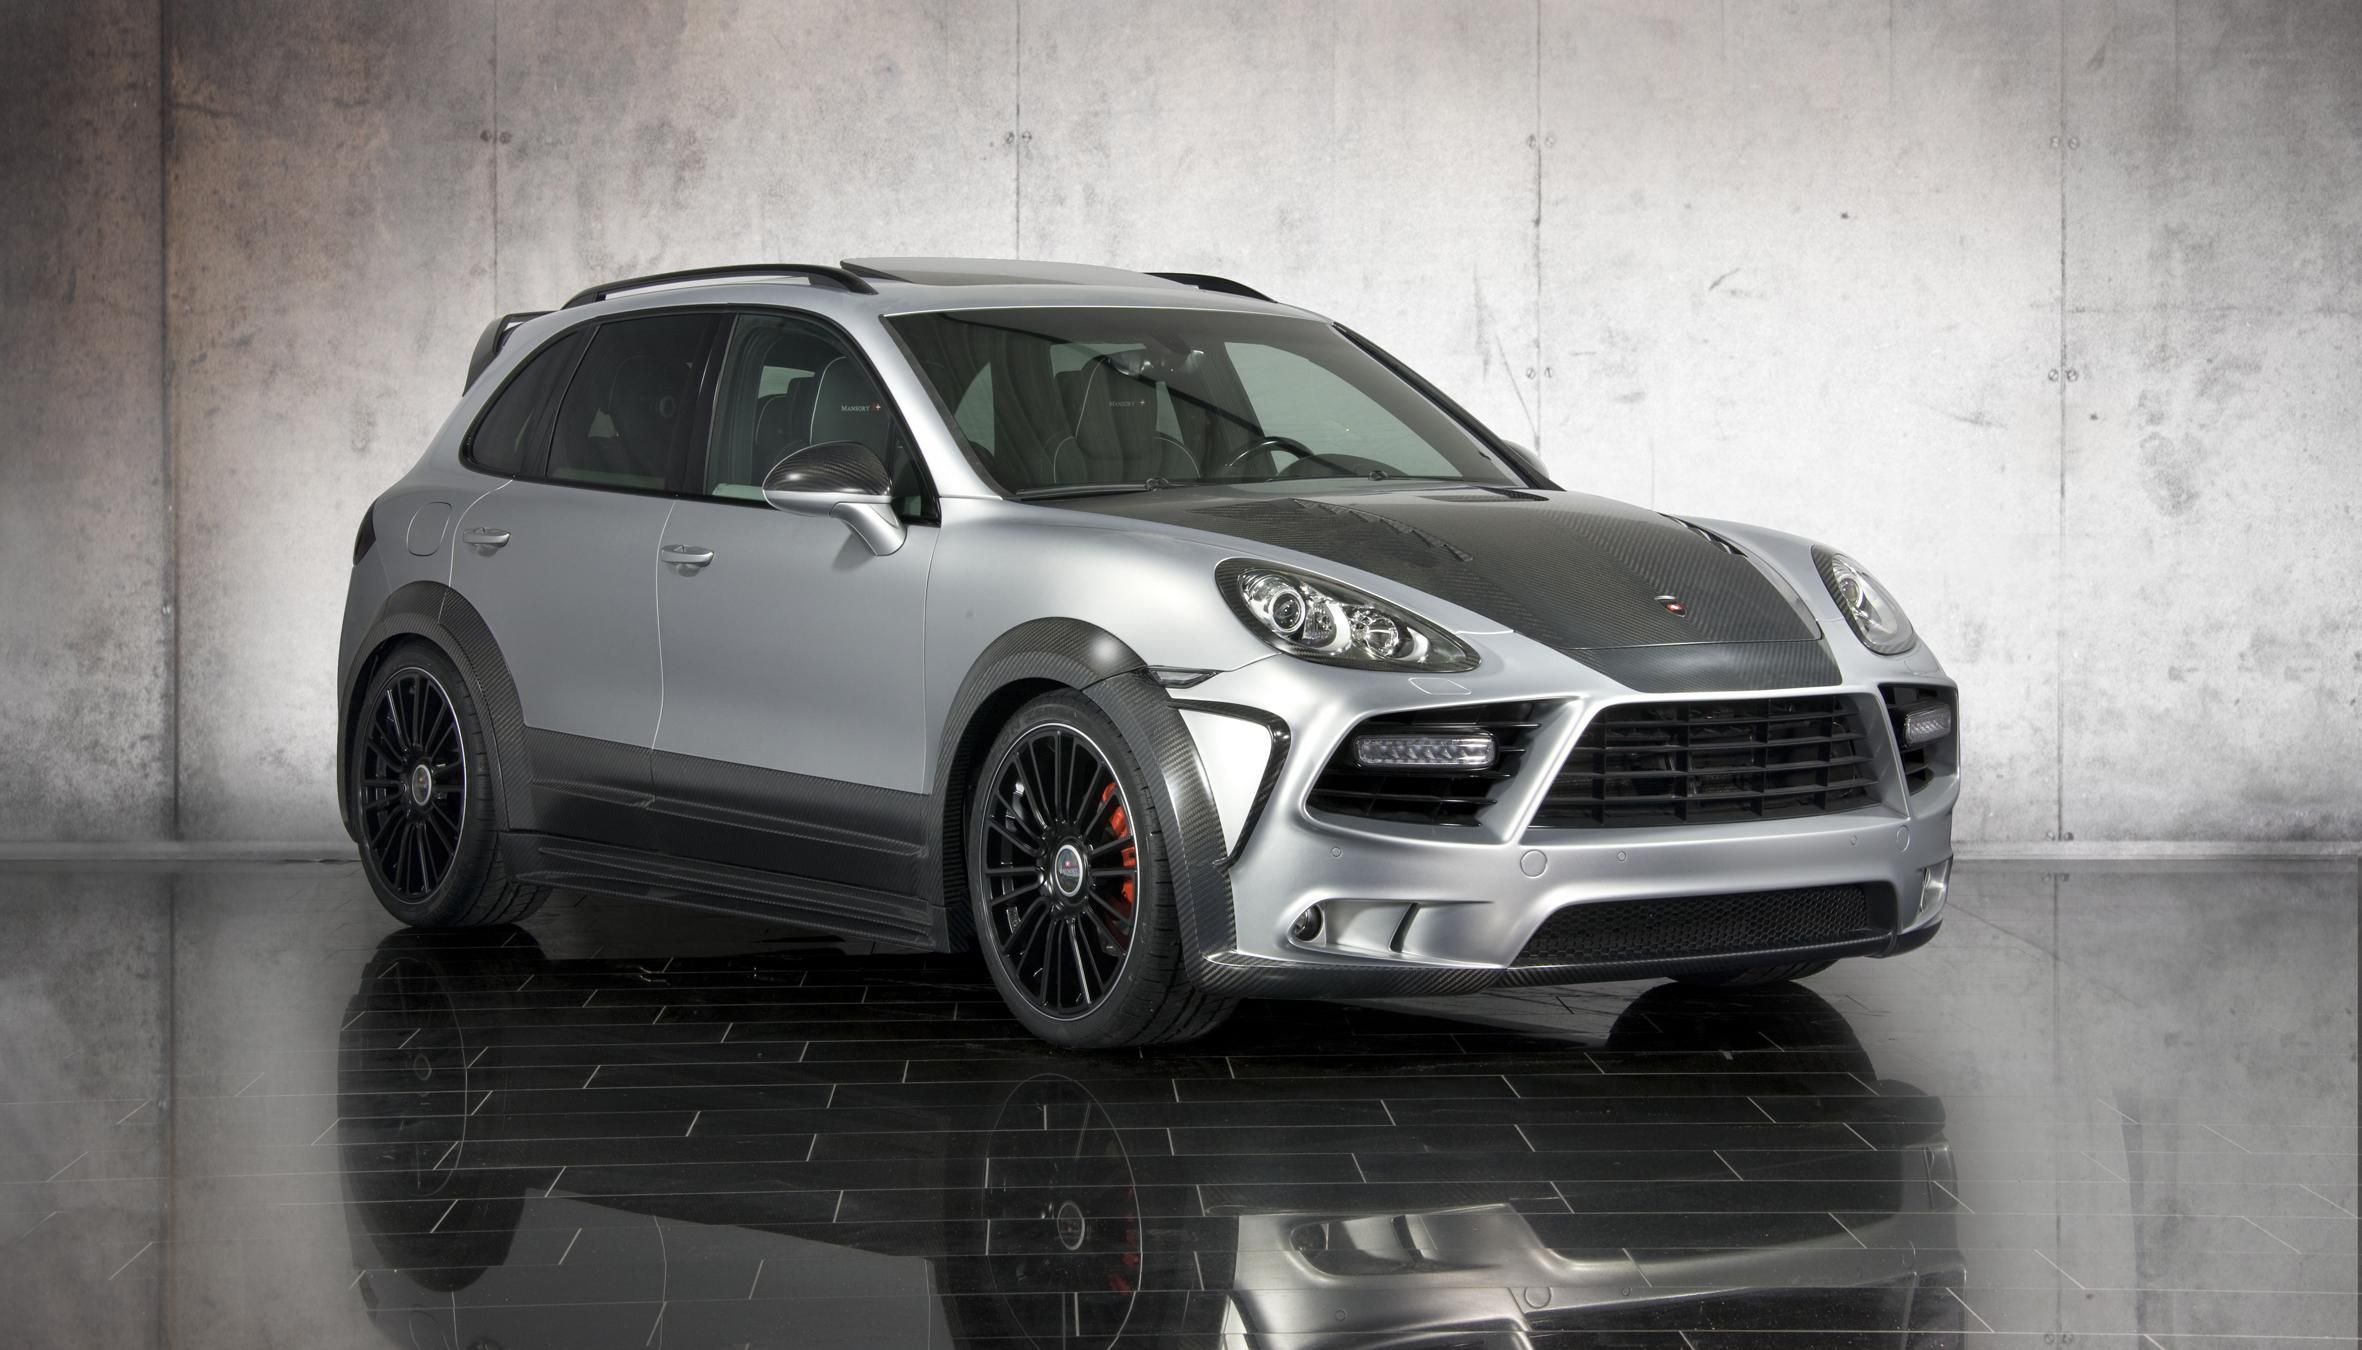 caricos mansory porsche cayenne turbo s 2015 link a la web 7 fotos mansory pinterest cayenne turbo and cars